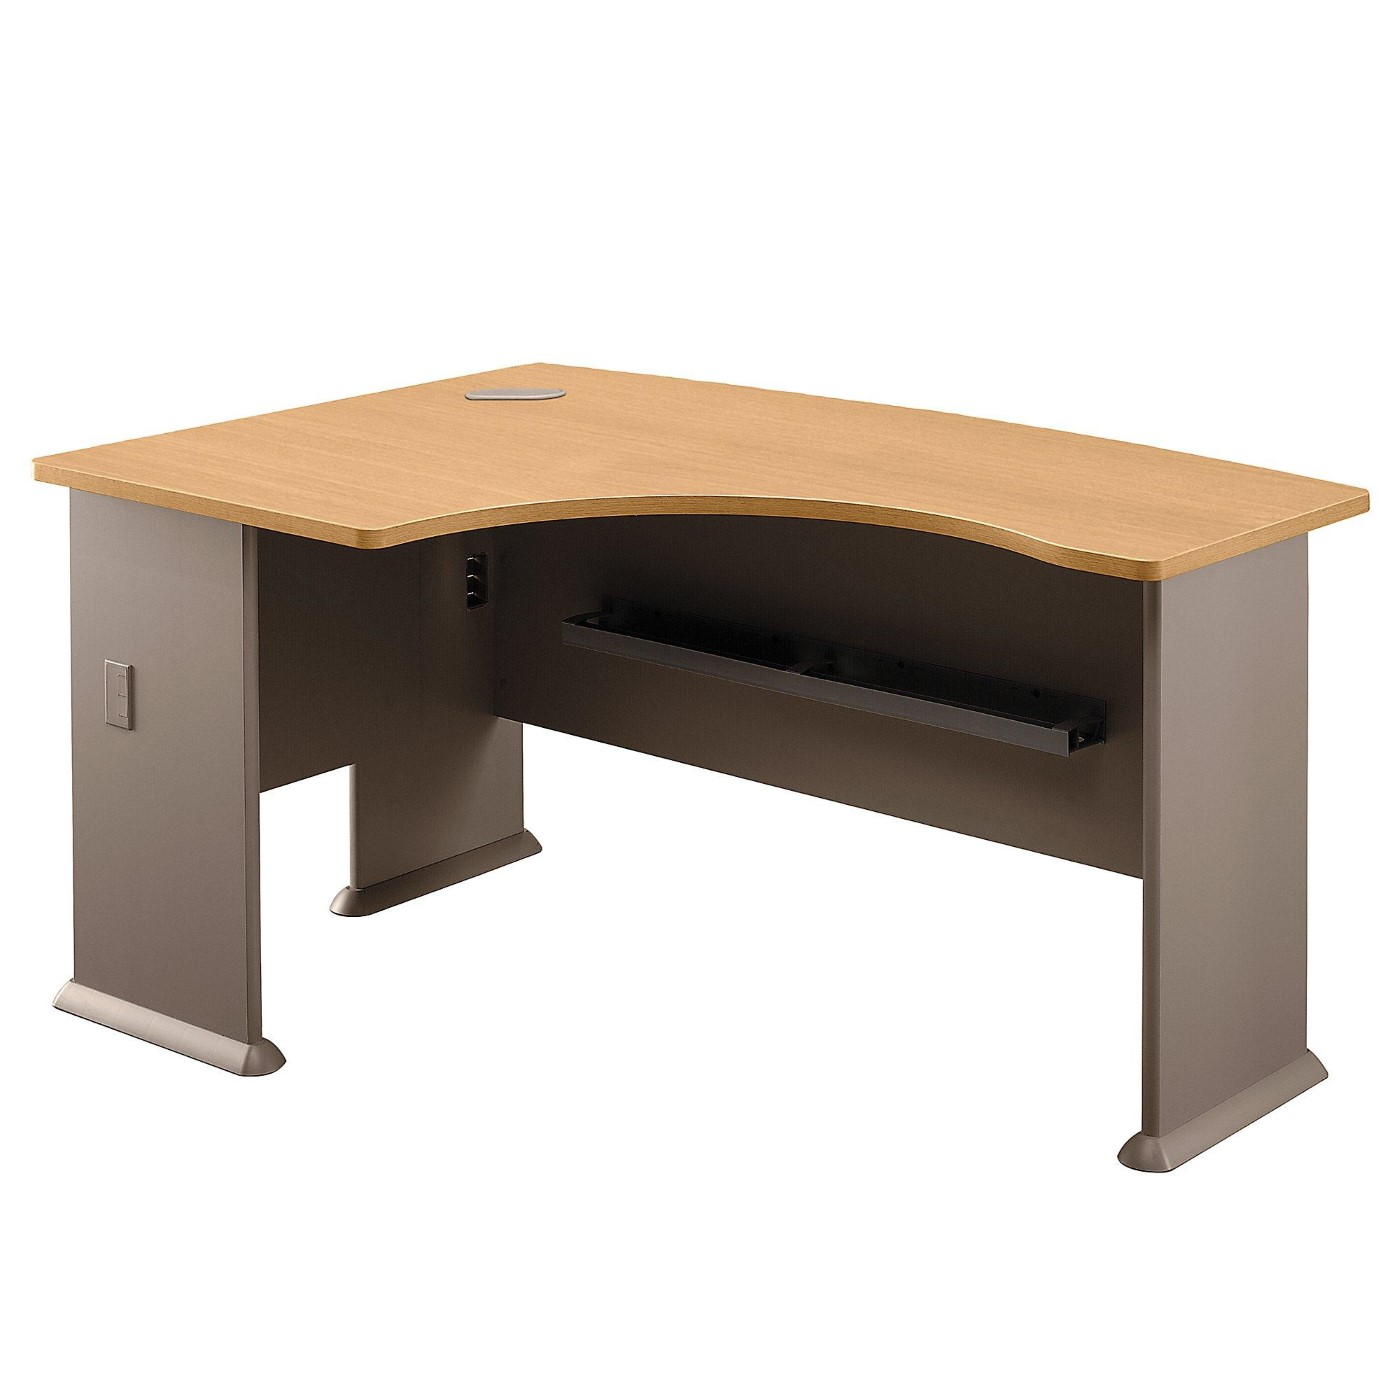 <font color=#c60><b>BUSH BUSINESS FURNITURE SERIES A 60W X 44D RIGHT HANDED L BOW DESK. FREE SHIPPING</font></b>